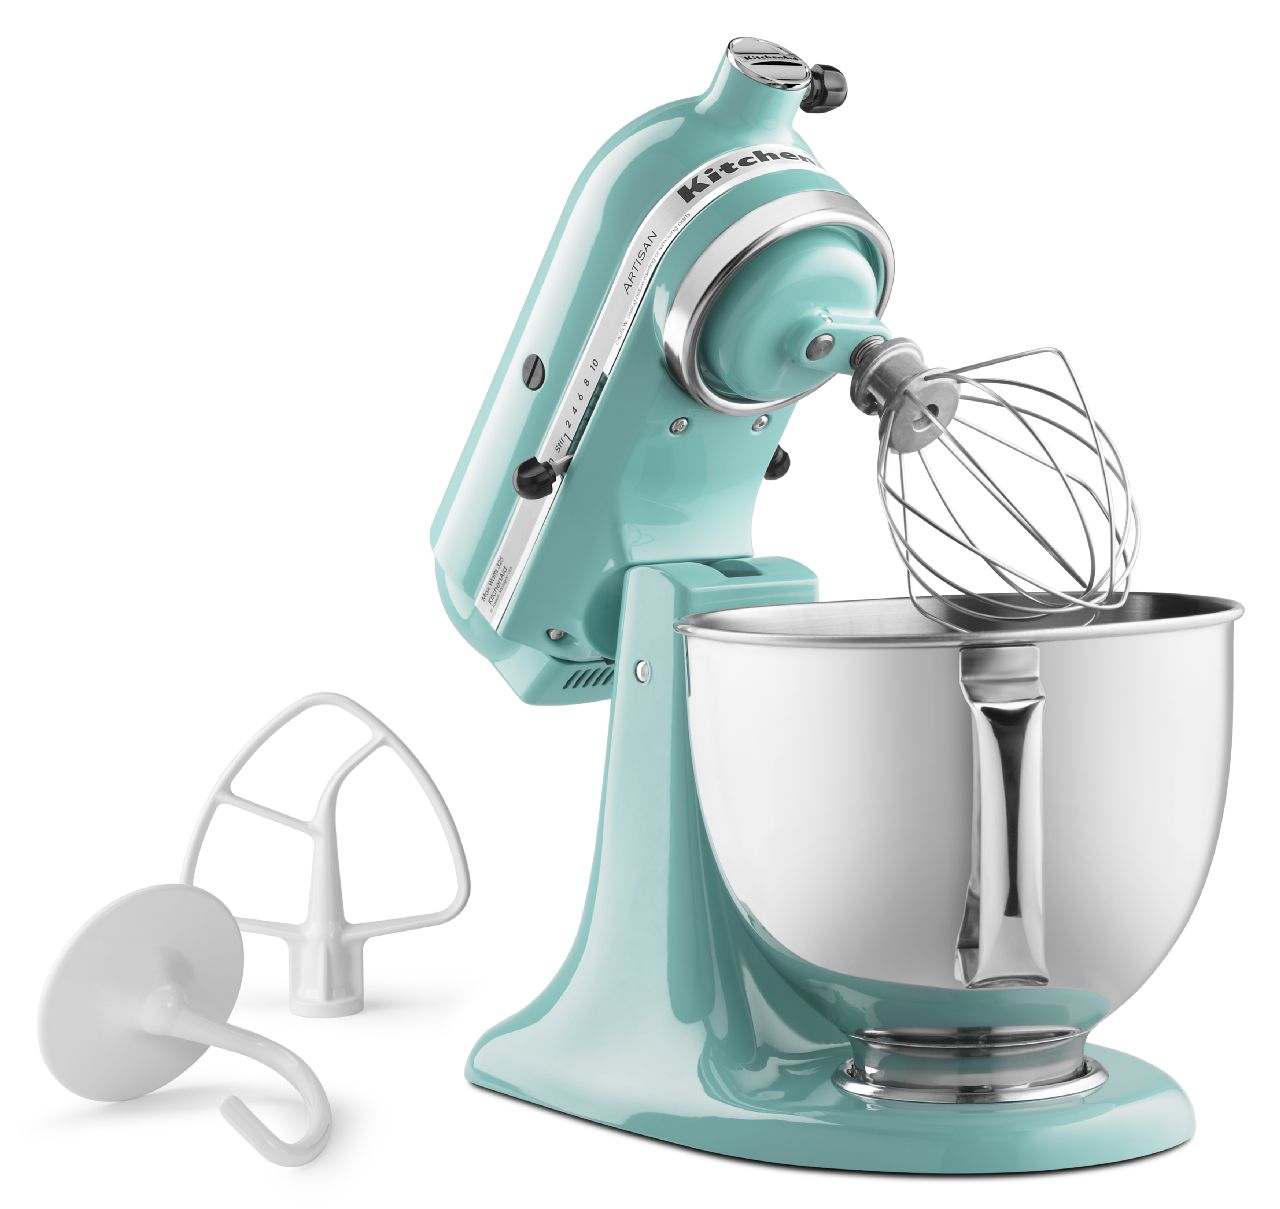 KitchenAid-Refurbished-Artisan-Series-5-Quart-Tilt-Head-Stand-Mixer-RRK150 thumbnail 7